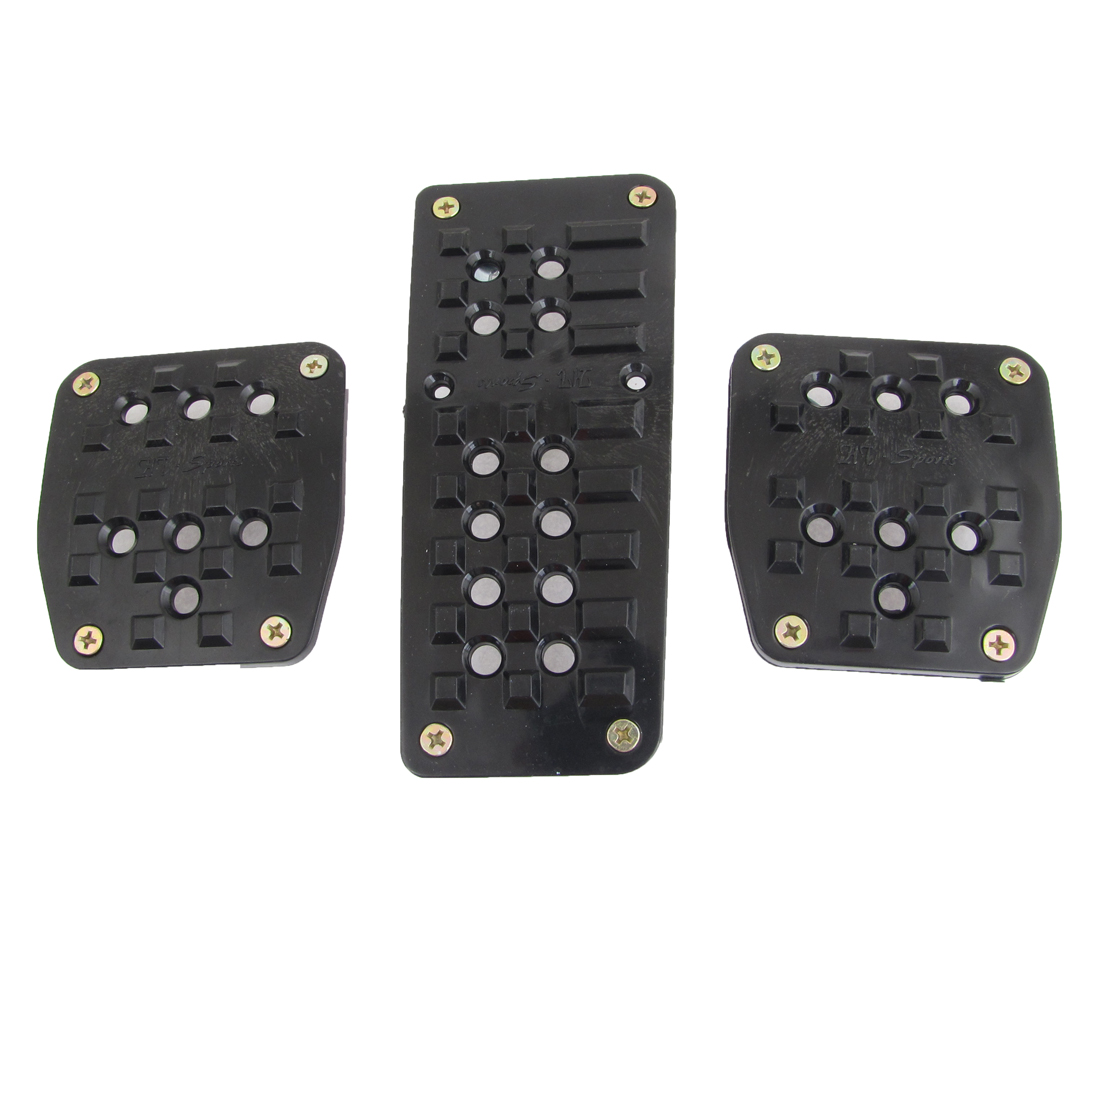 3 in 1 Black Metal Antislip Surface Gas Brake Pedal Cover for Auto Cars